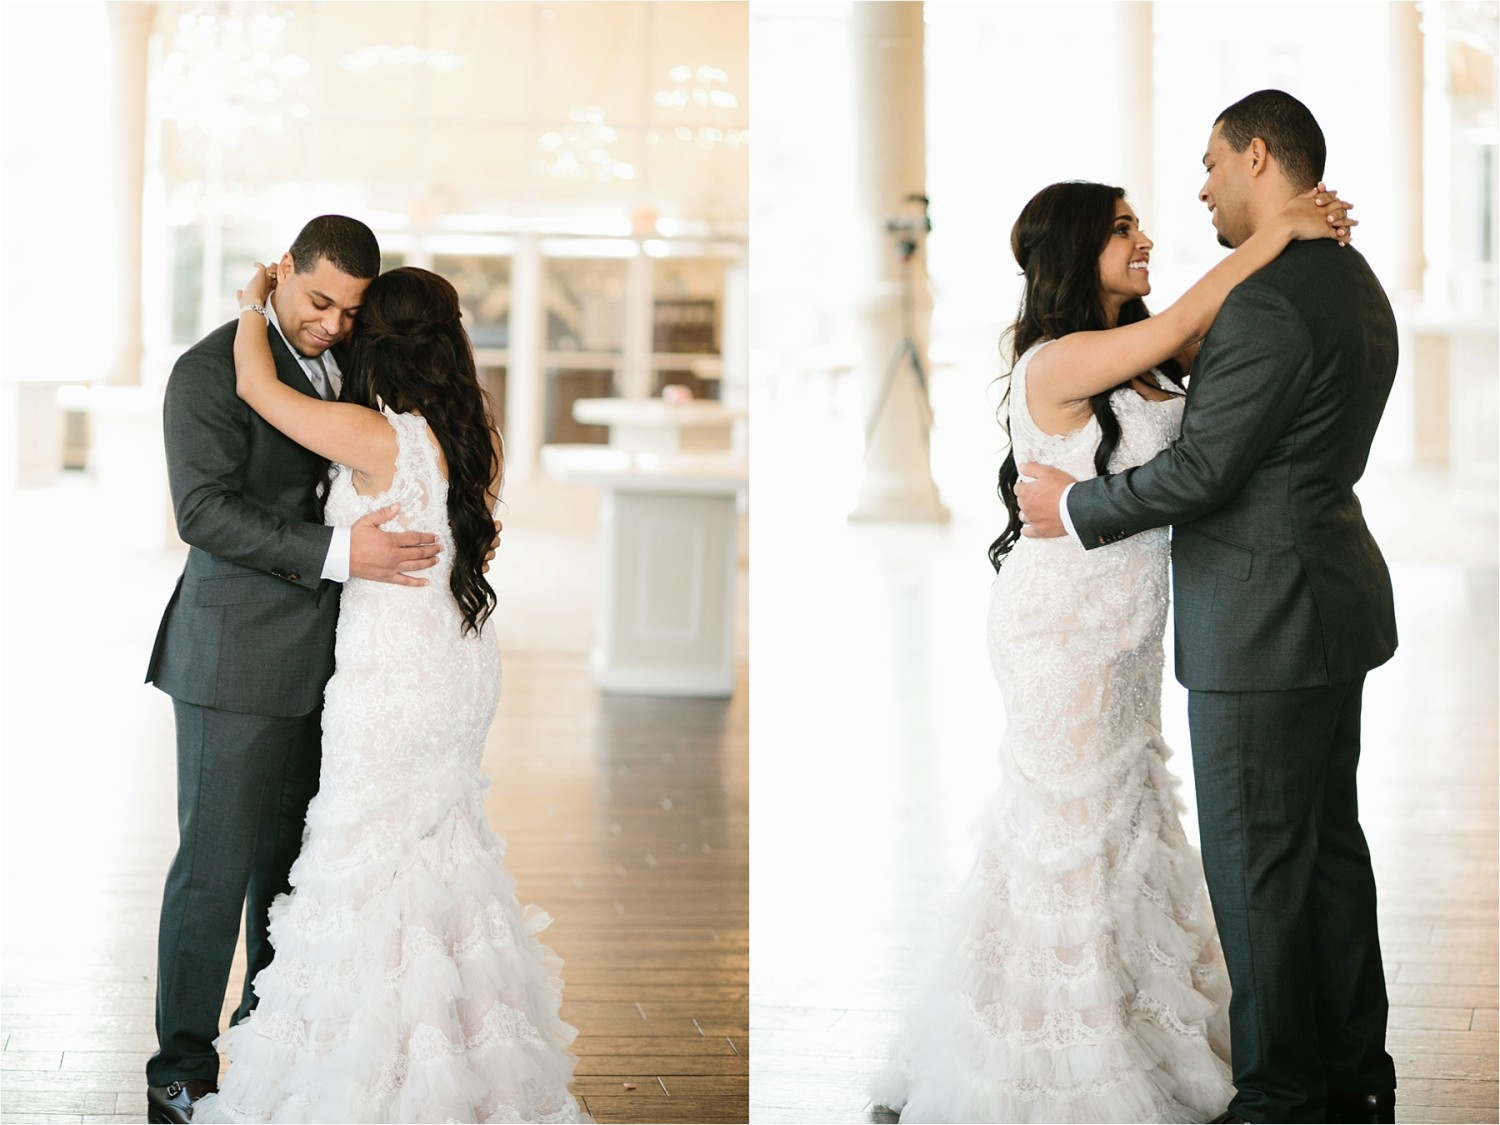 Jeanpaul + Ann __ a colorful wedding at Ashton Gardens in Houston TX by North Texas Wedding Photographer Rachel Meagan Photography _ 42